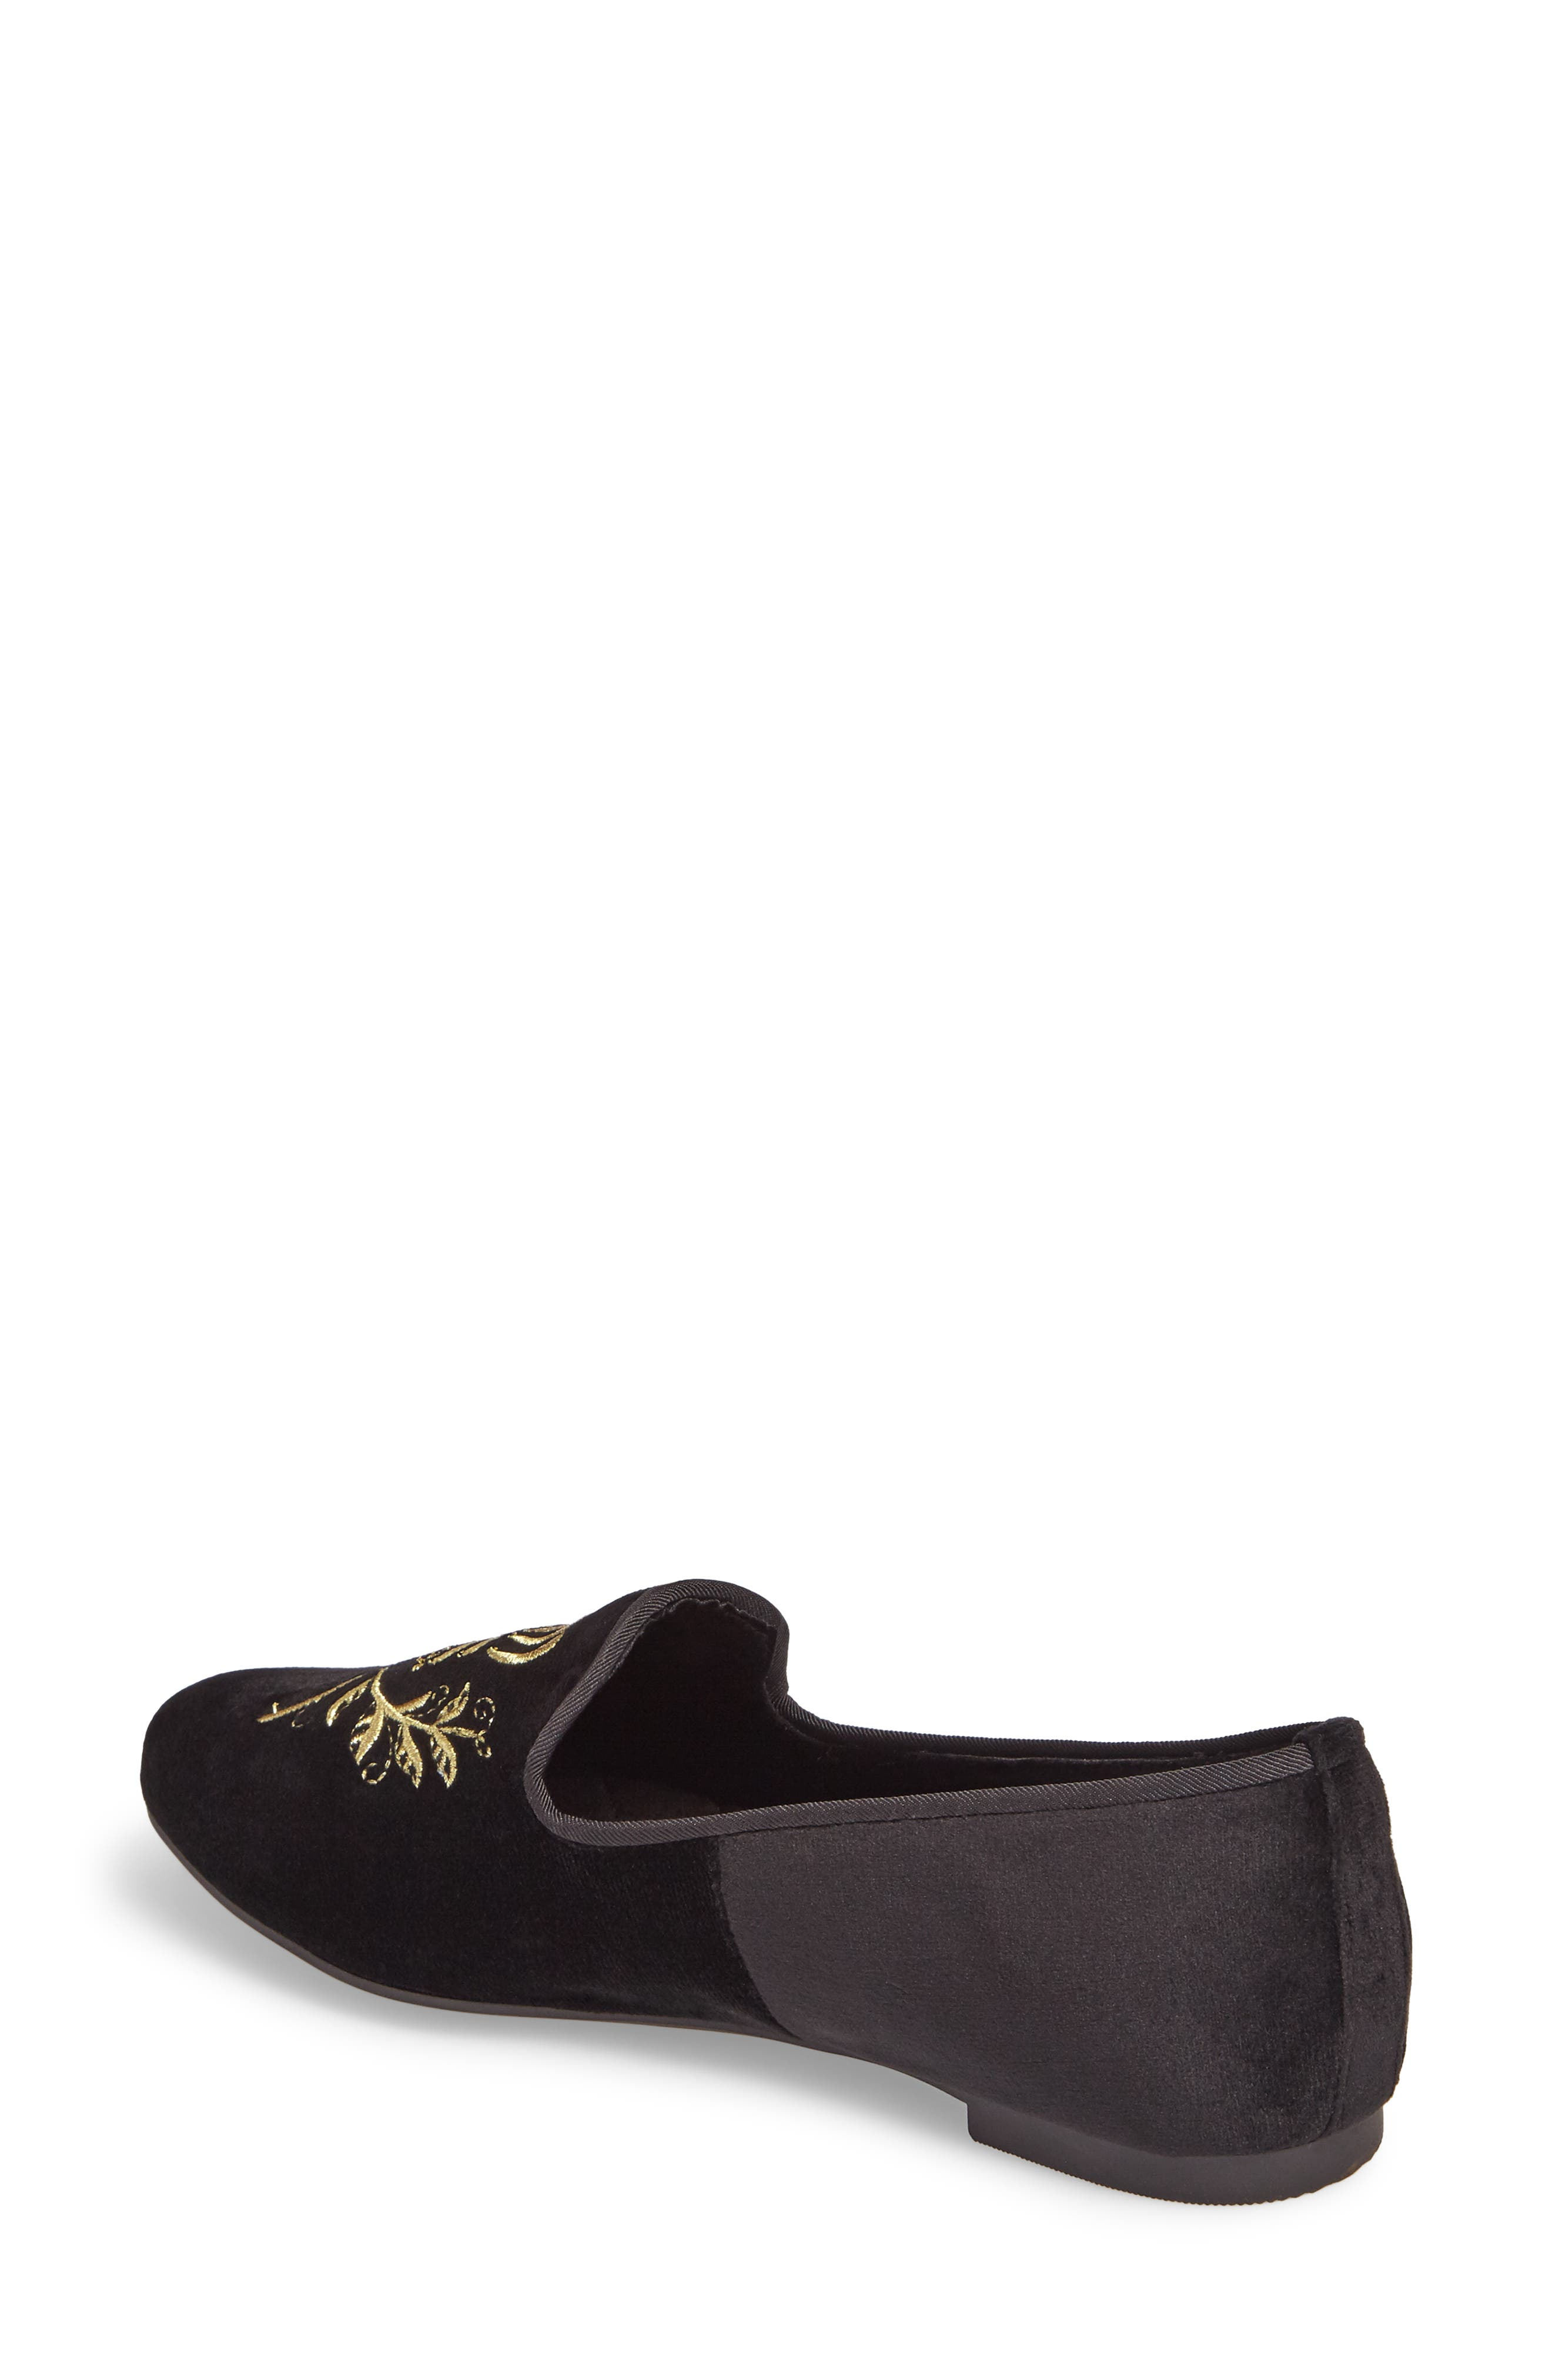 Romi Embroidered Flat,                             Alternate thumbnail 2, color,                             001